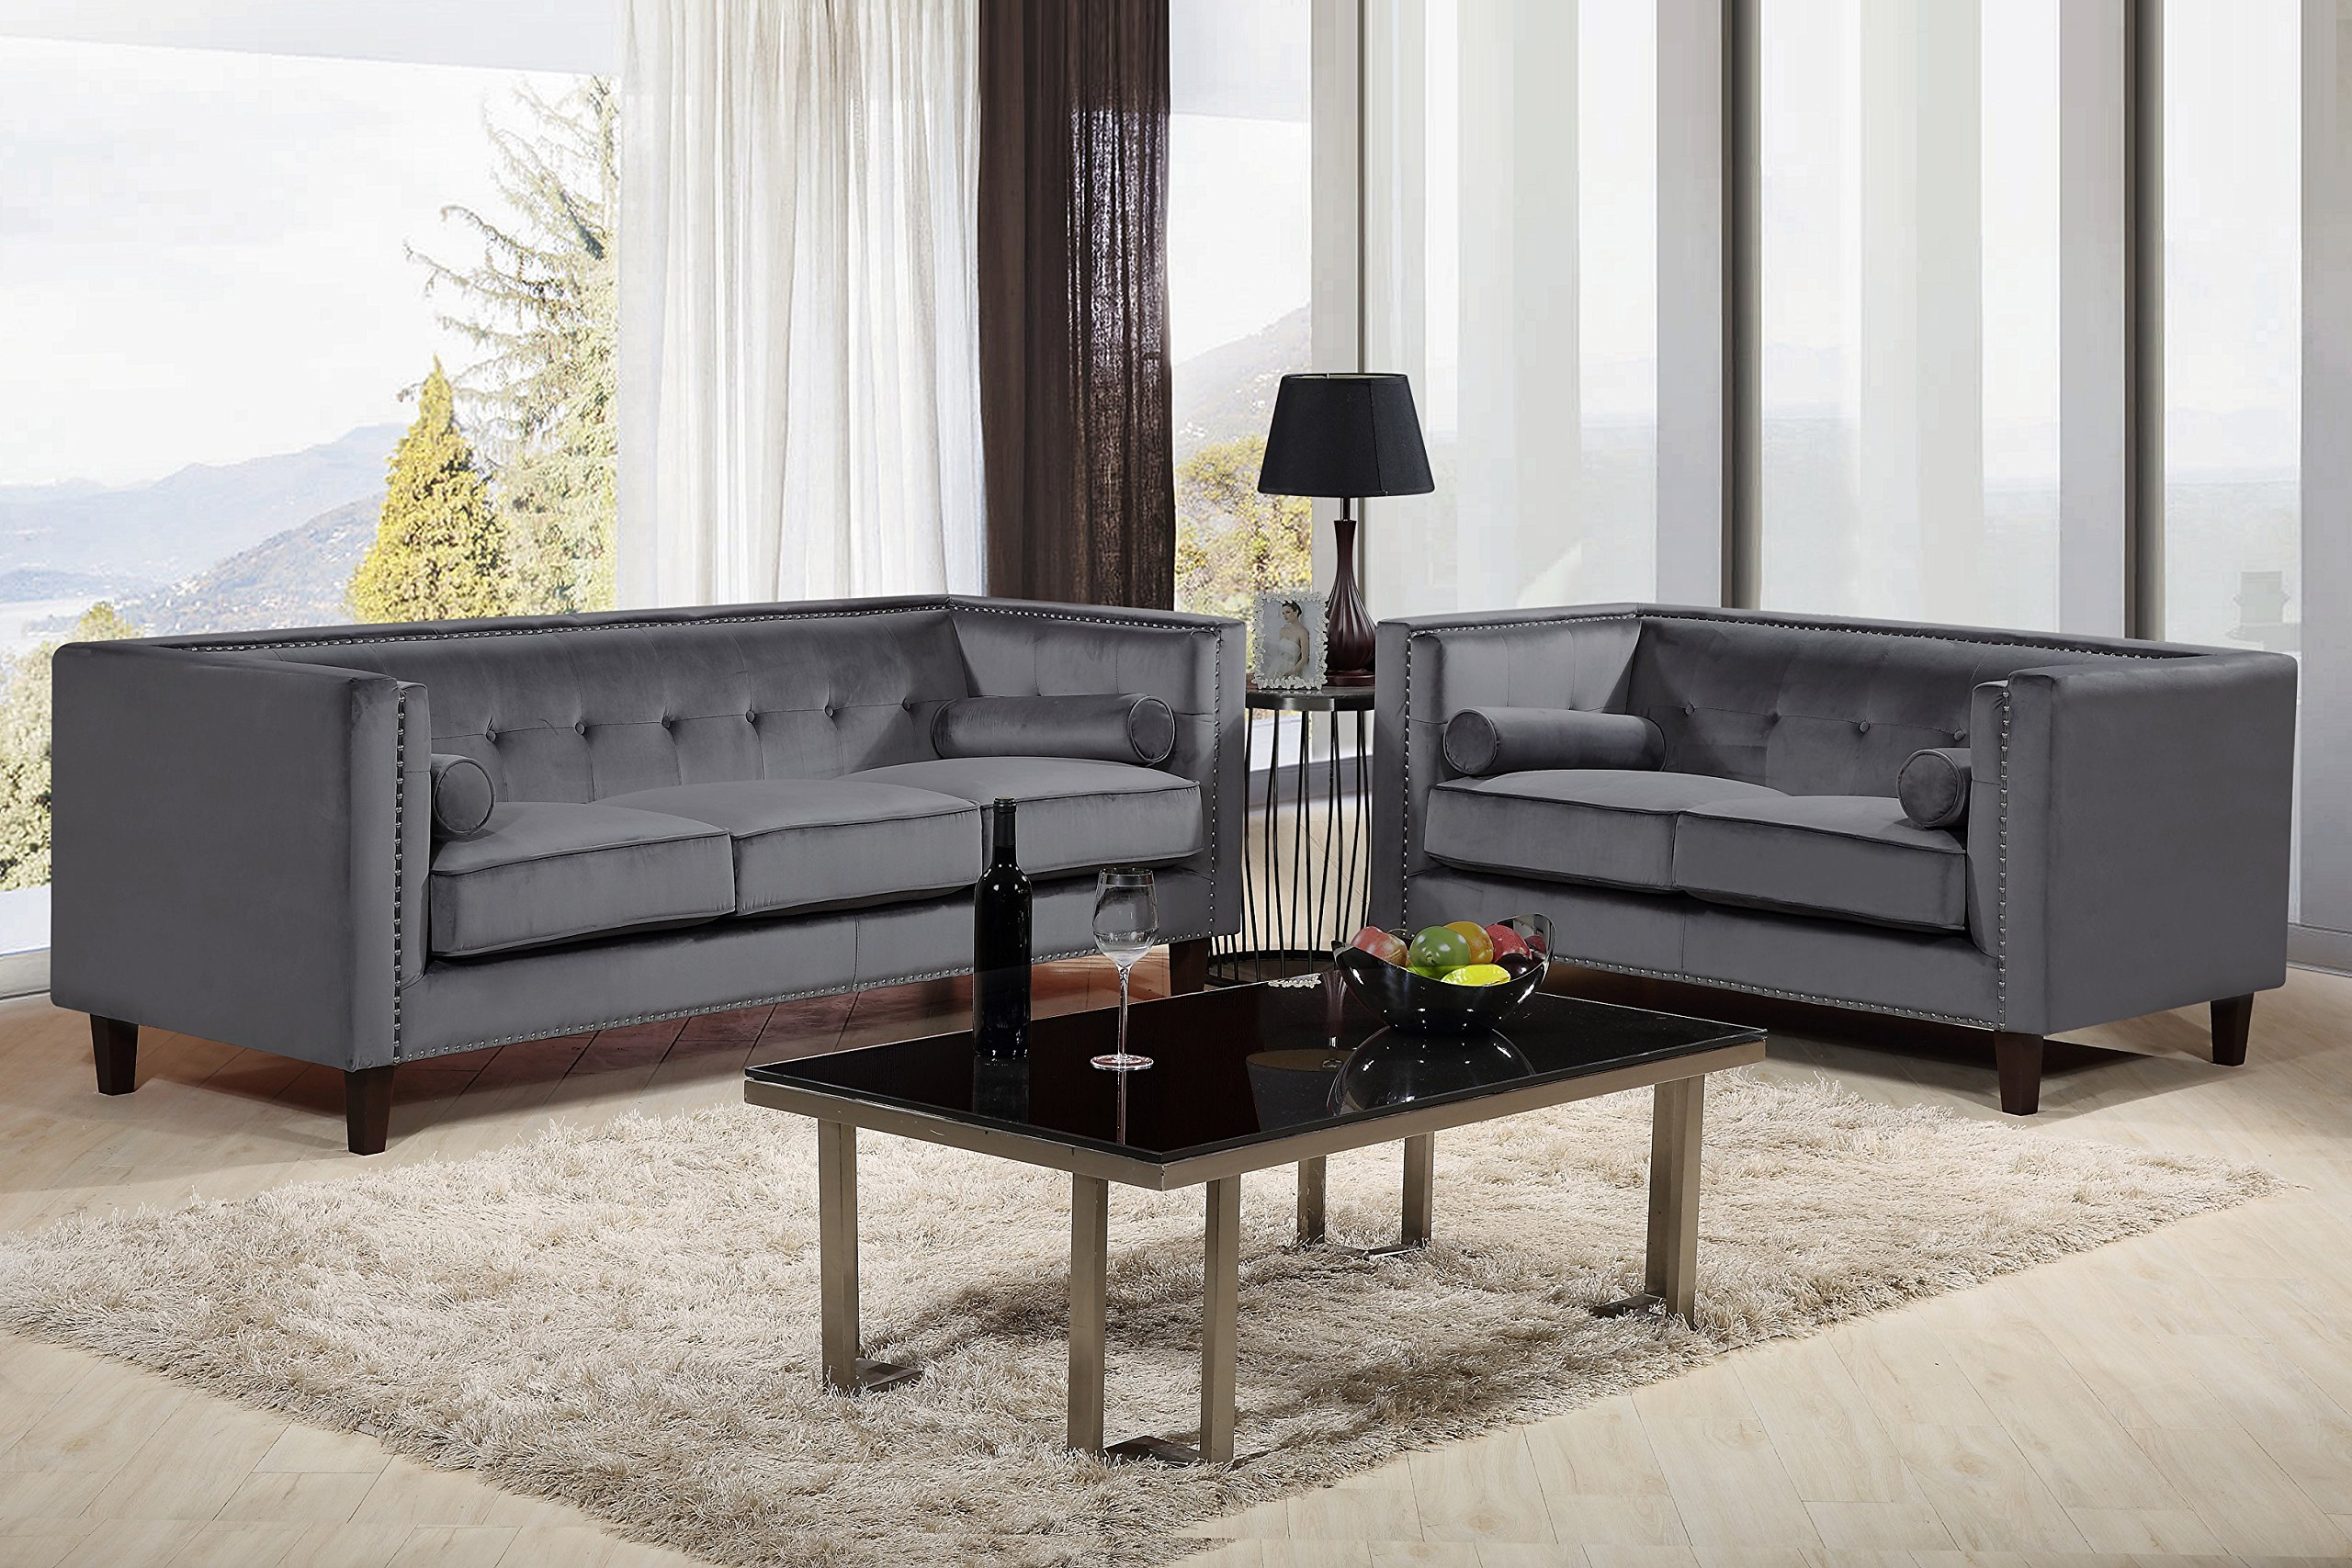 Container Furniture Direct S5369-2PC Kitts Velvet Upholstered Modern Chesterfield Sofa Set, 78'' Sofa and Loveseat, Blue by Container Furniture Direct